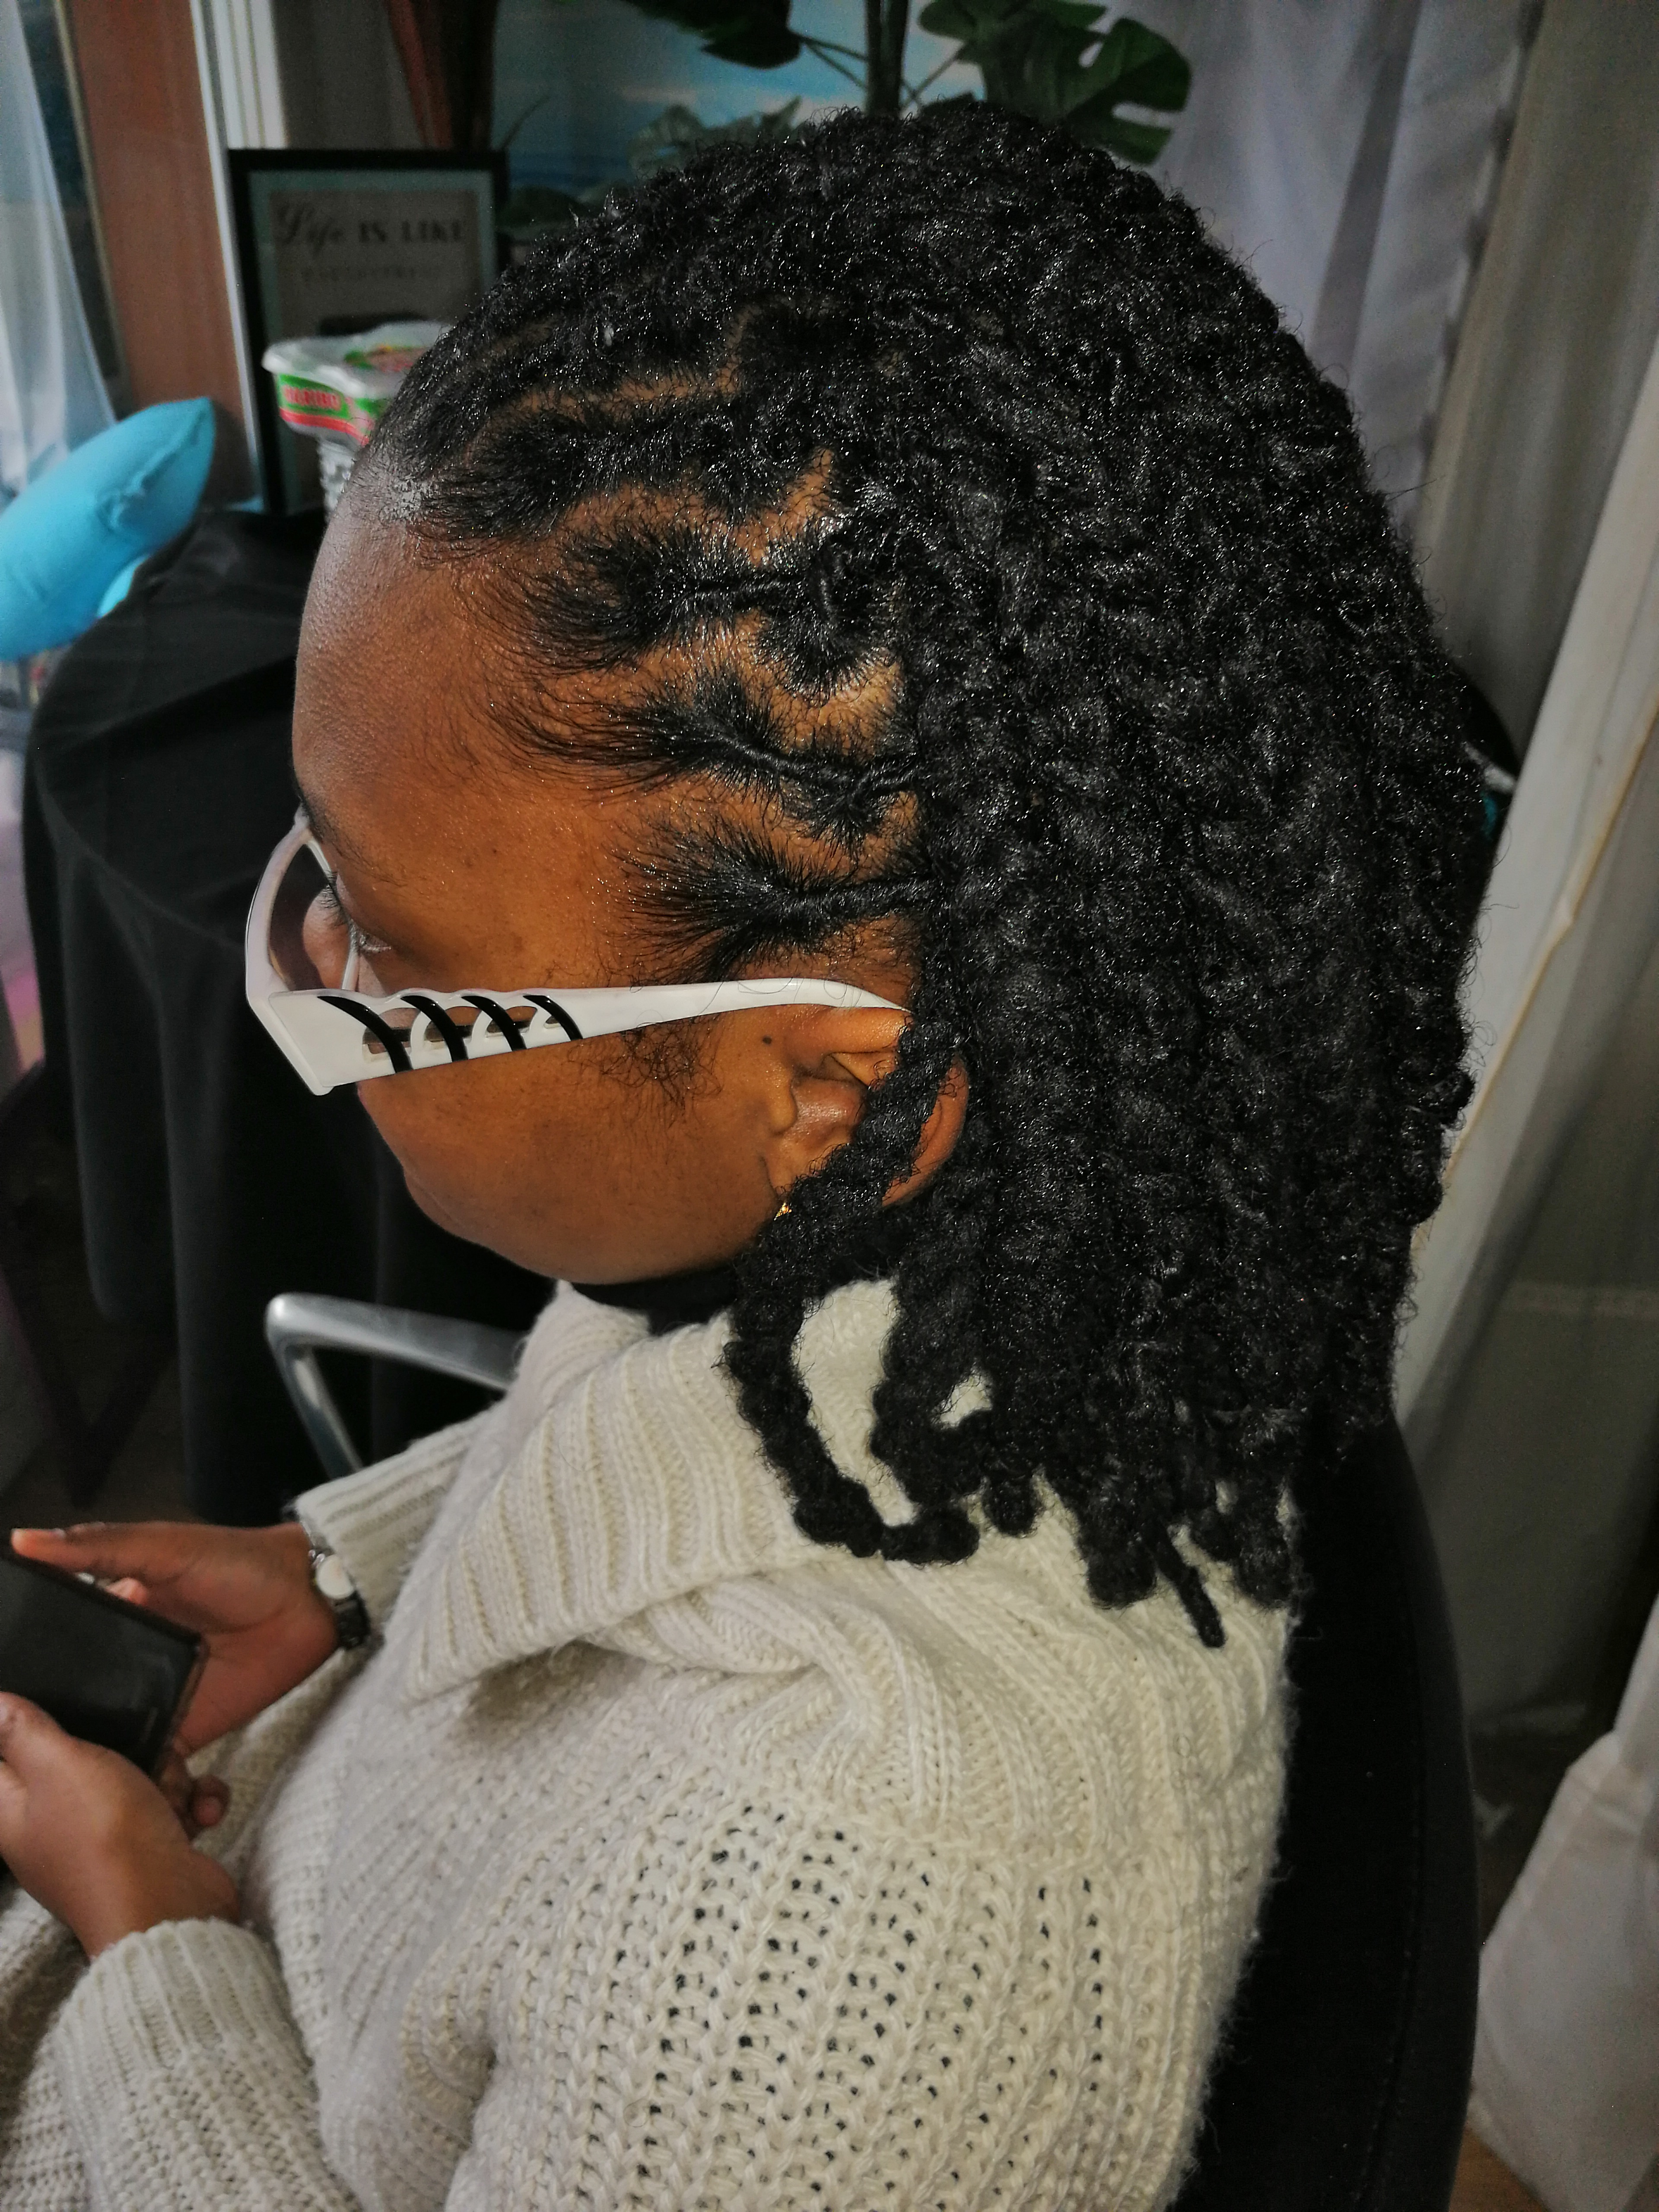 salon de coiffure afro tresse tresses box braids crochet braids vanilles tissages paris 75 77 78 91 92 93 94 95 YCSKHBTD